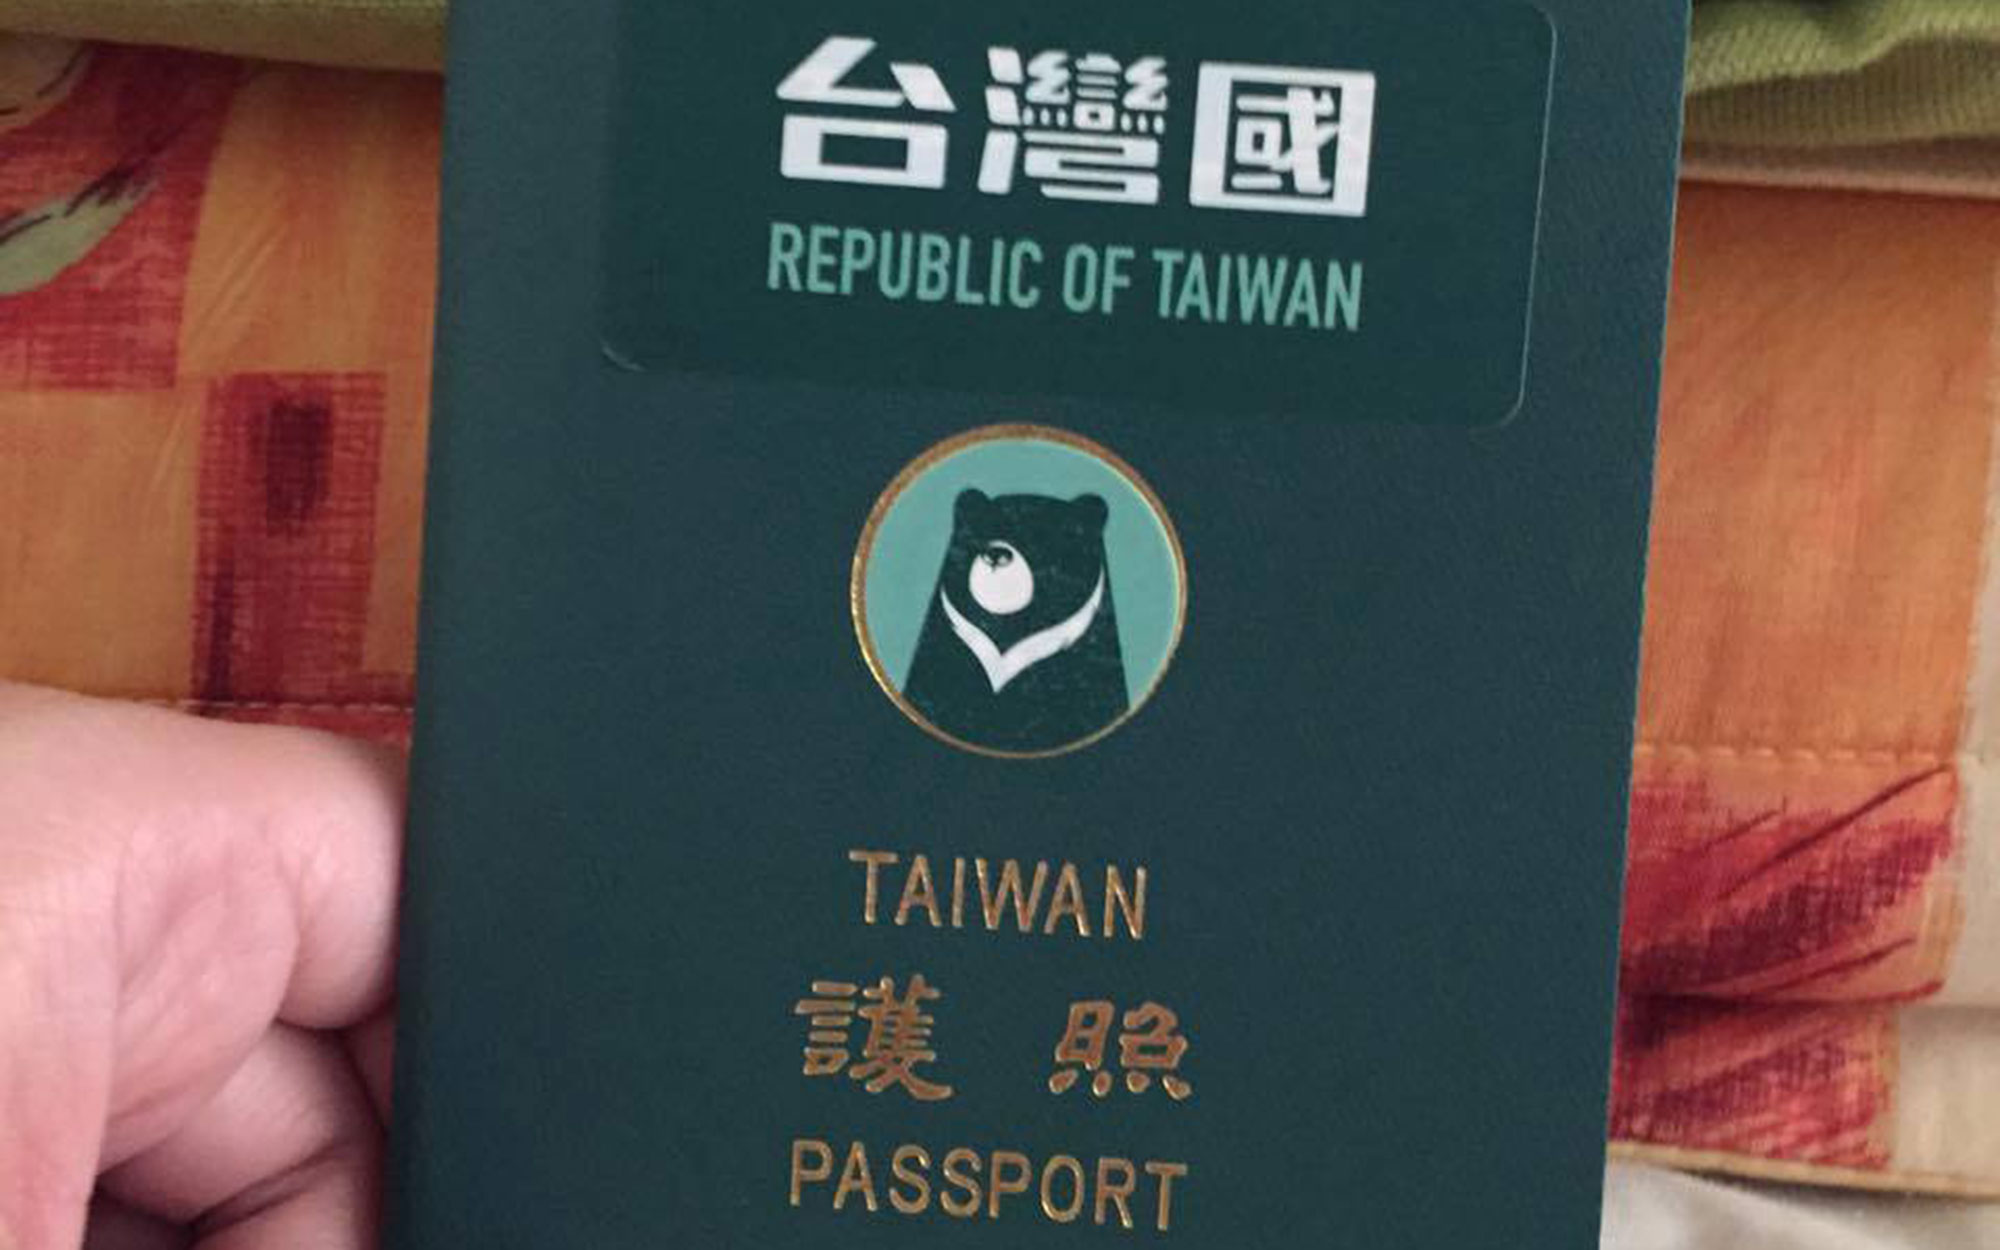 Taiwan Approves Passport Stickers Promoting Independence